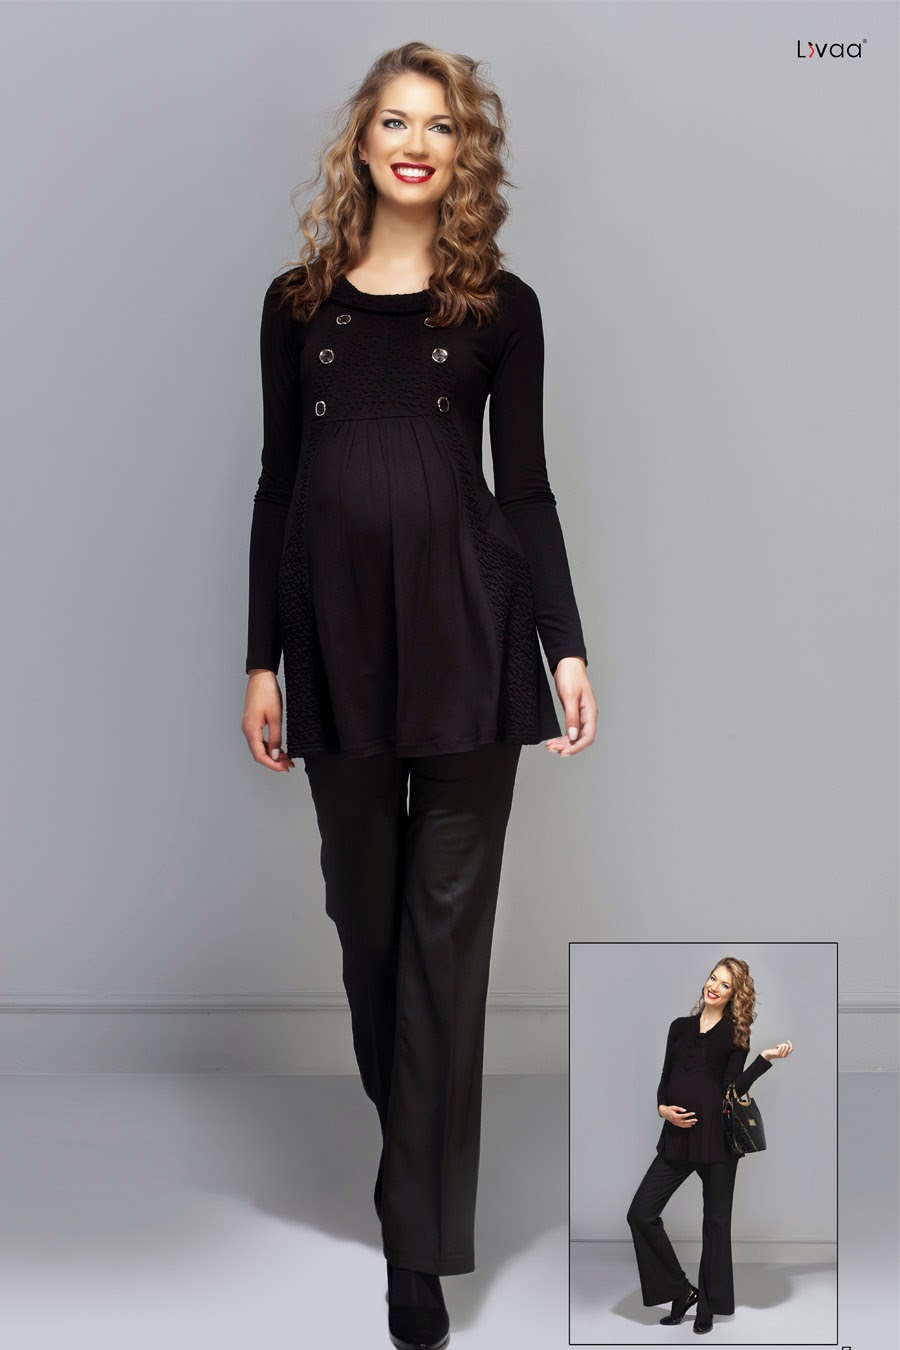 Seraphine's fashionable maternity clothes showcase this season's latest trends, Beautiful fabrics · Stunning collection · Flawless fitTypes: Dresses, Jeans, Pants, Tops, Leggings, Swimwear, Nursing, Bump Kits.